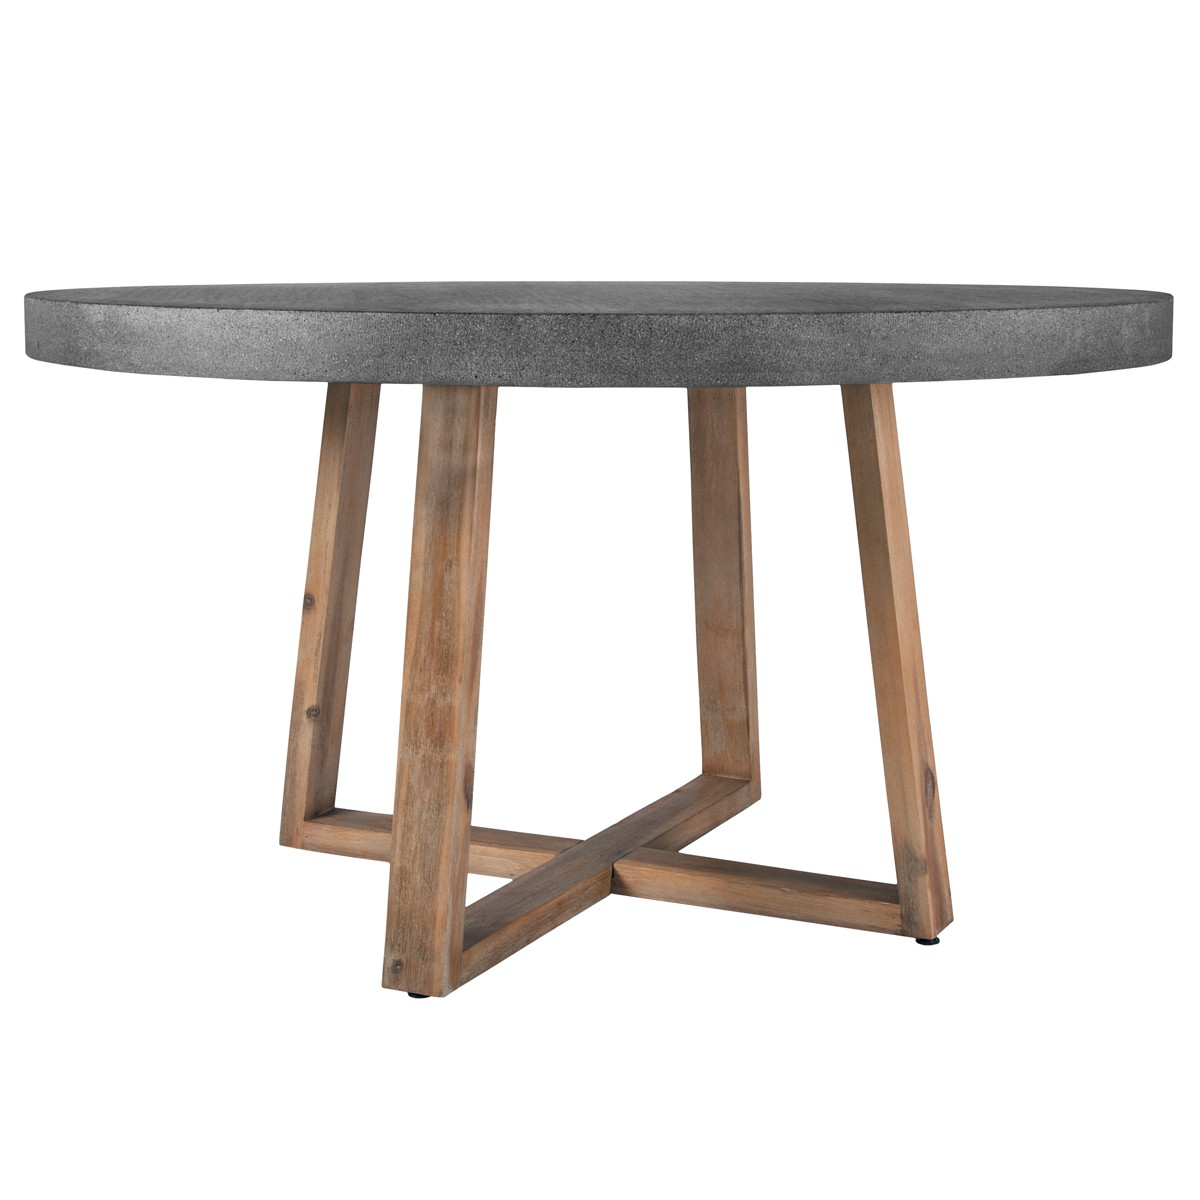 Table ronde r sine et bois 140 cm koya design - Deco table ronde ...